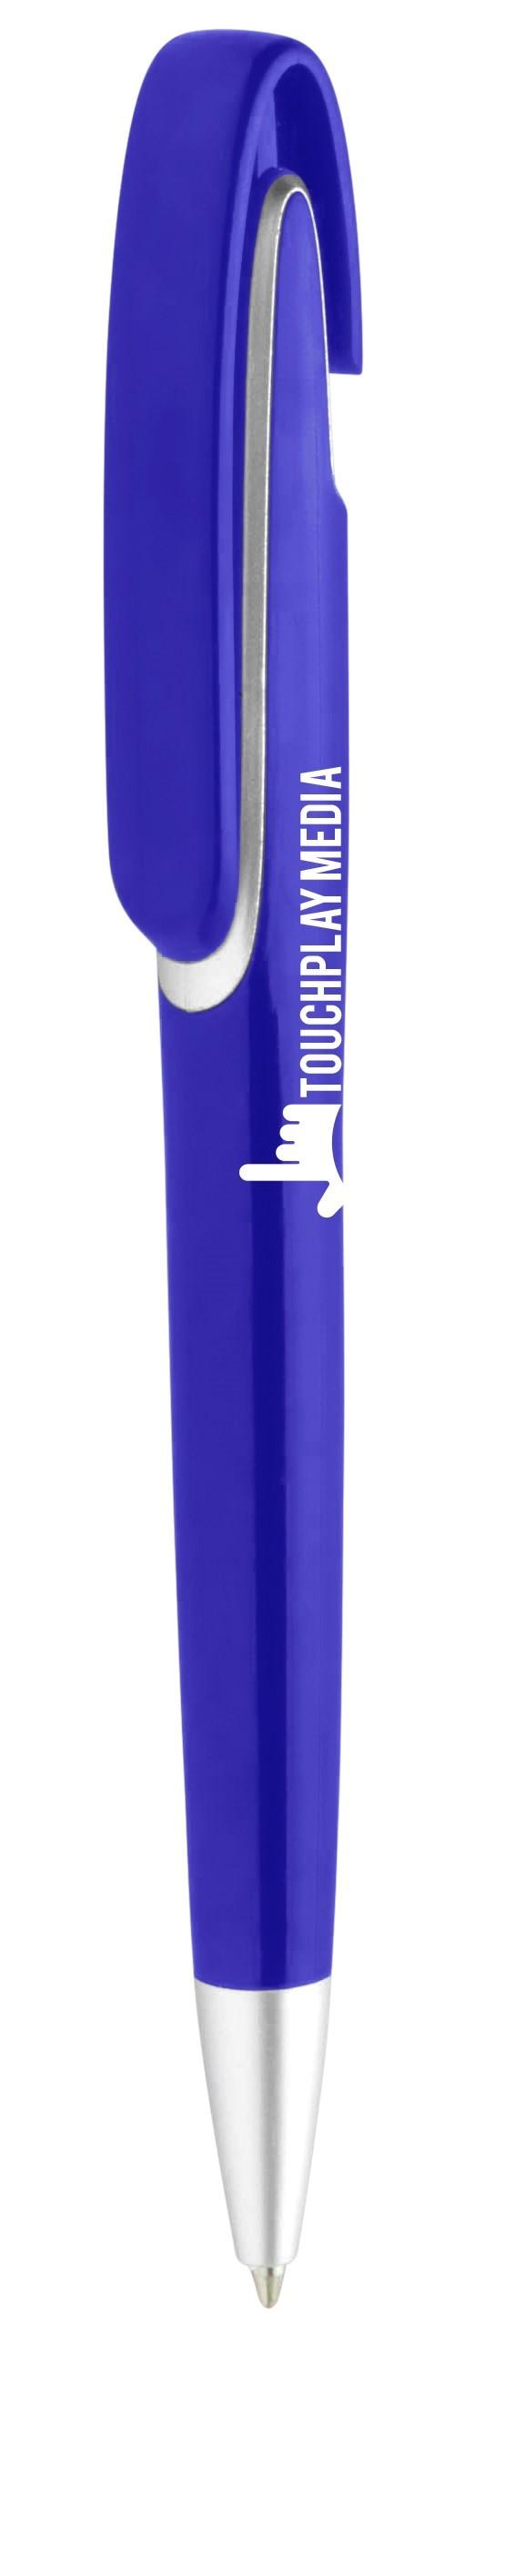 Lotus Ball Pen - Blue Only